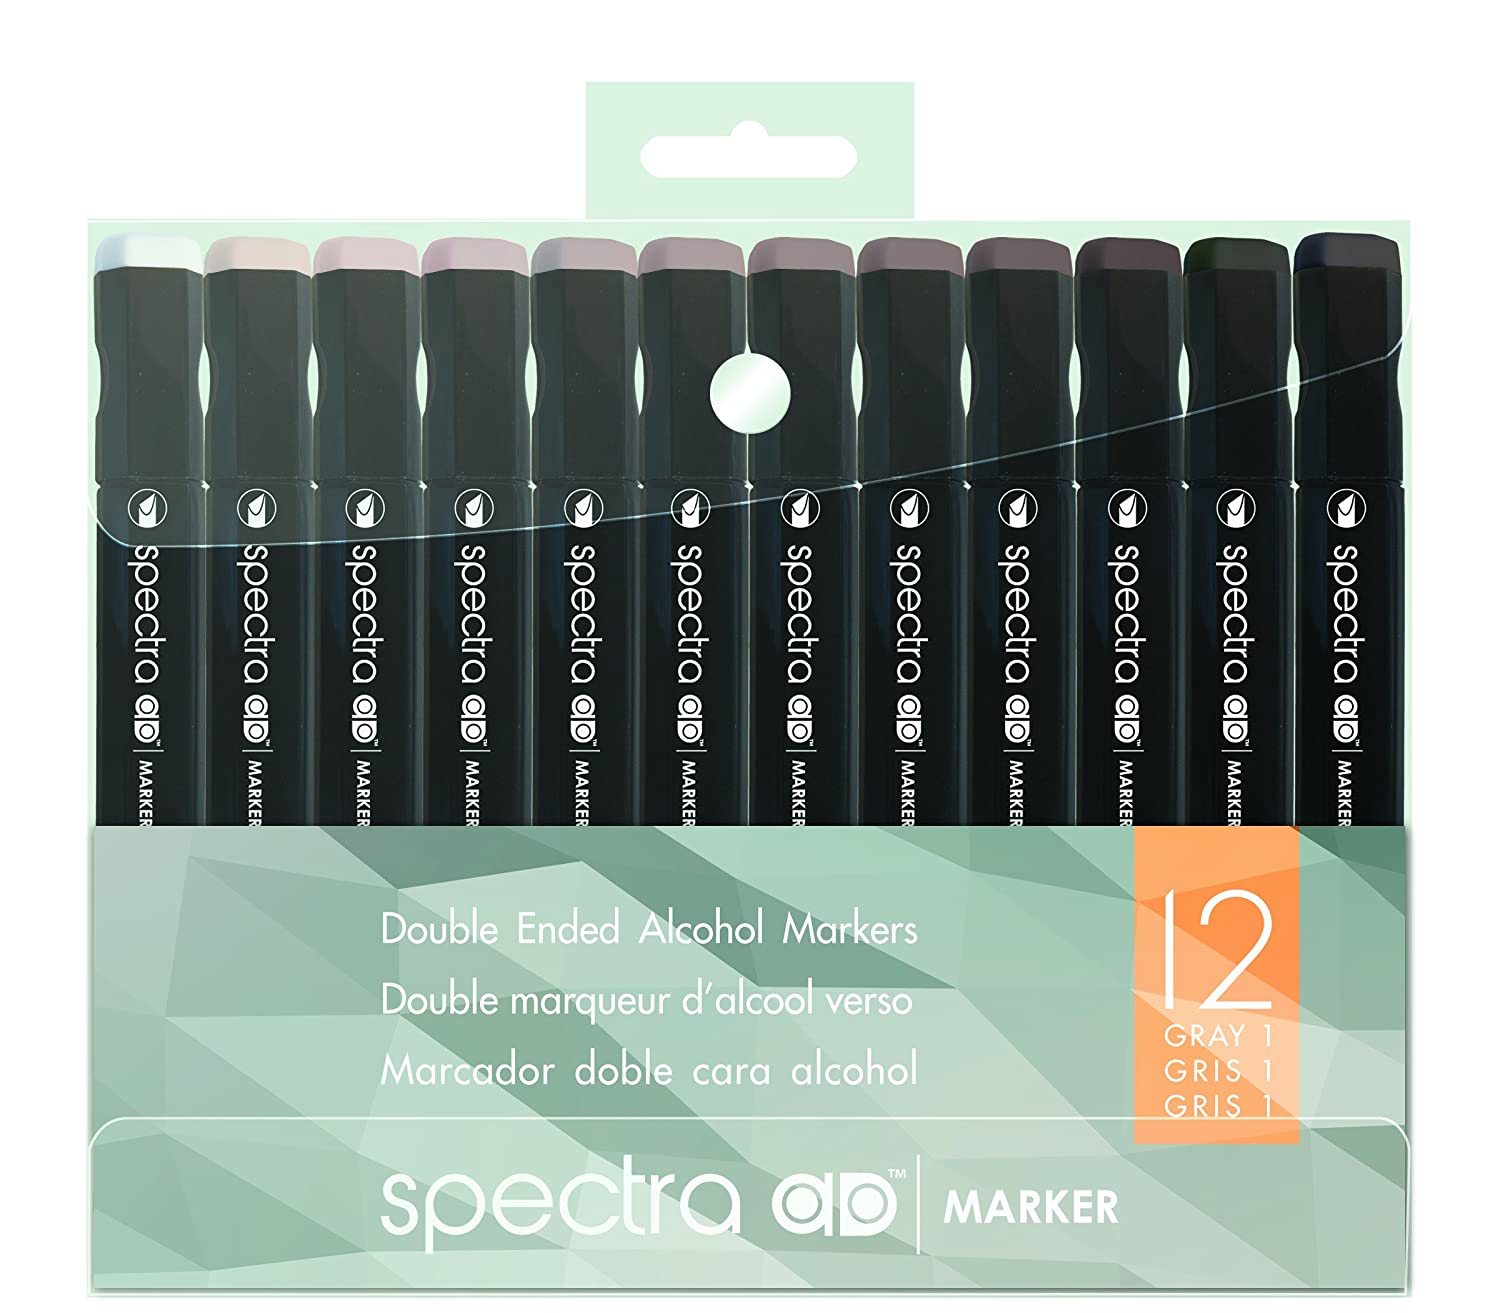 Chartpak Spectra Admarker Set 12 clrs Wrm Gry clrs 12 35d2f0